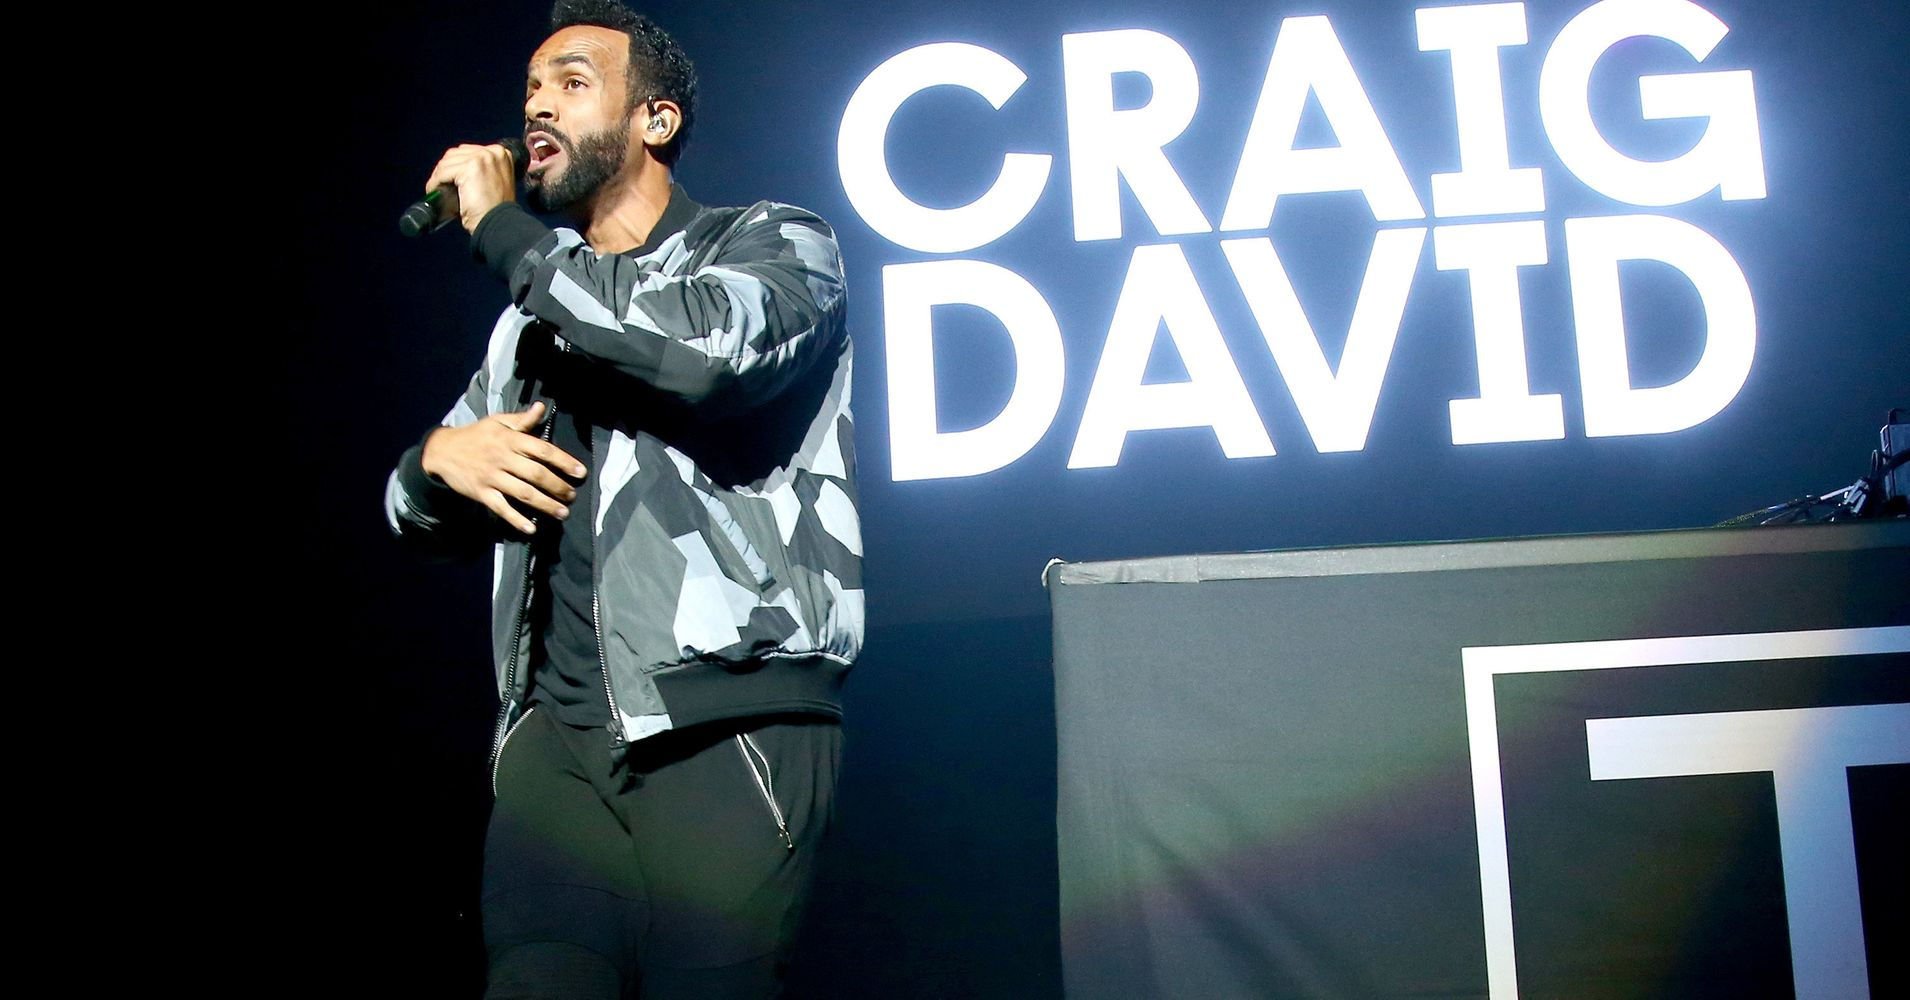 Craig David On His Unstoppable Rise As One Of Britain's Biggest Black Music Stars